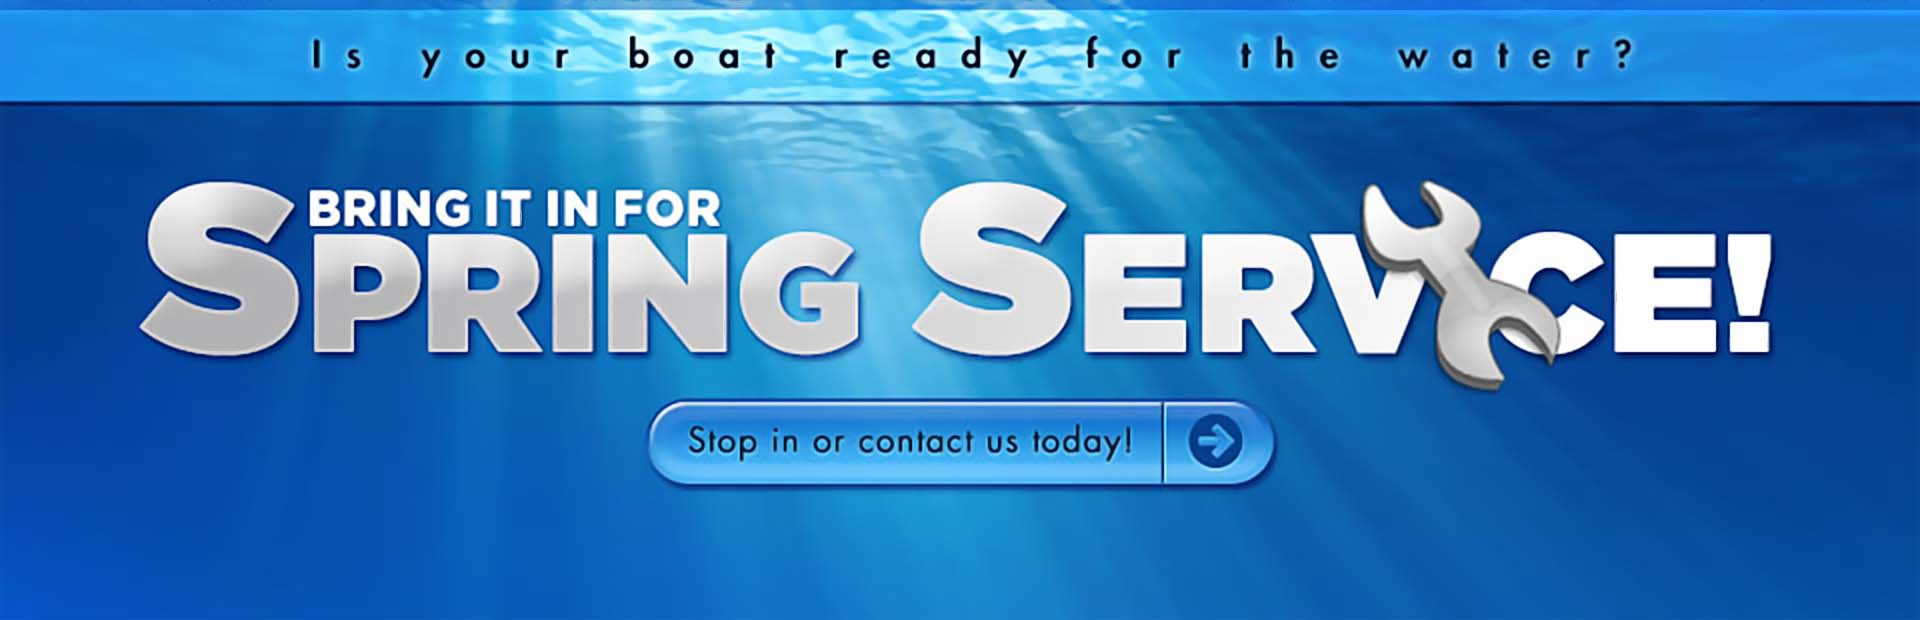 Bring your boat in for spring service! Click here for a list of services.